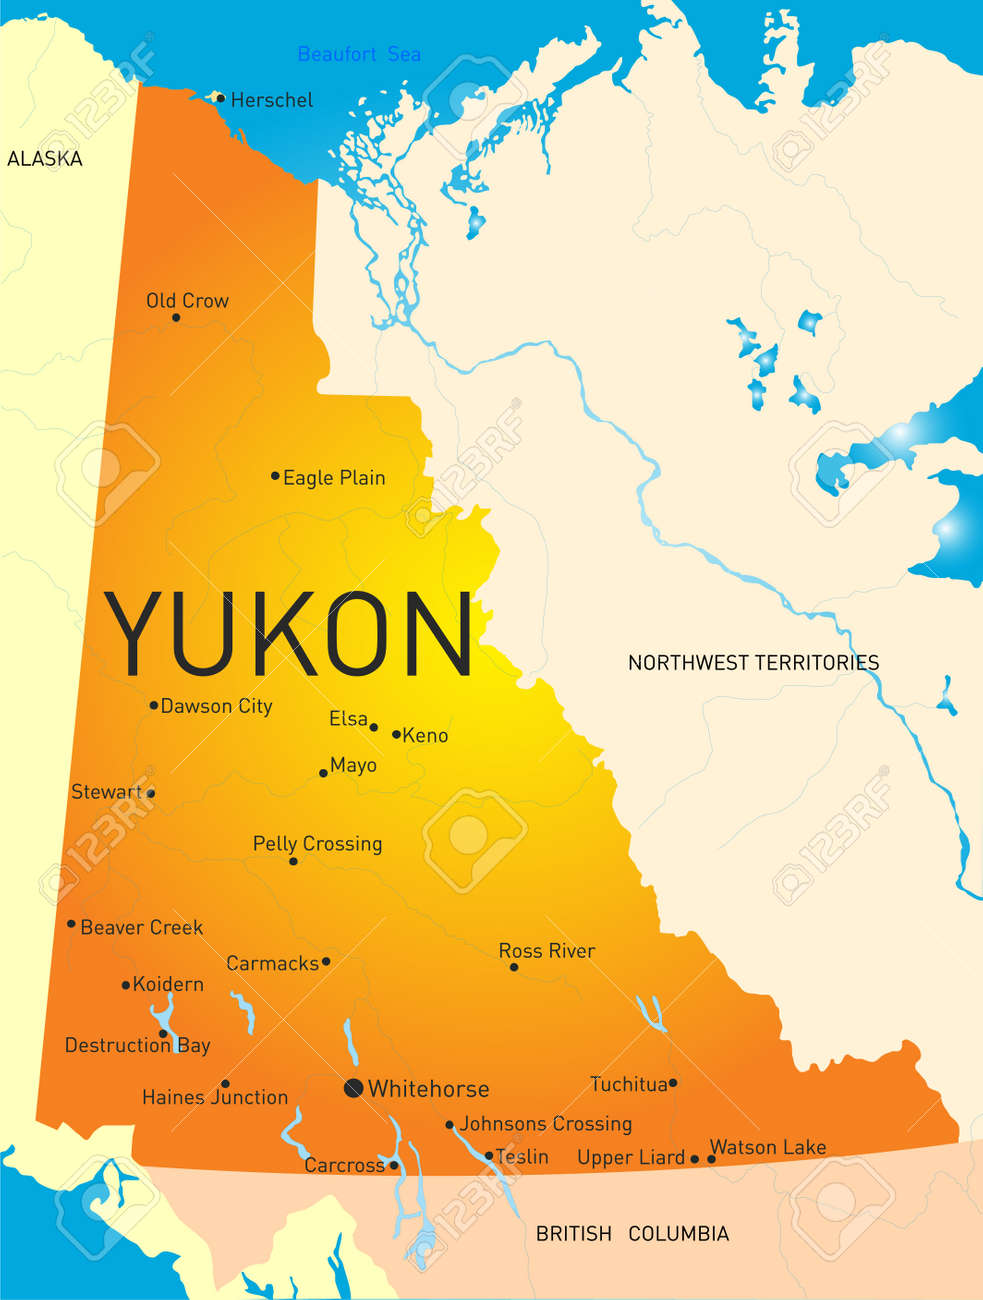 Yukon province color map royalty free cliparts vectors and stock vector yukon province color map publicscrutiny Images